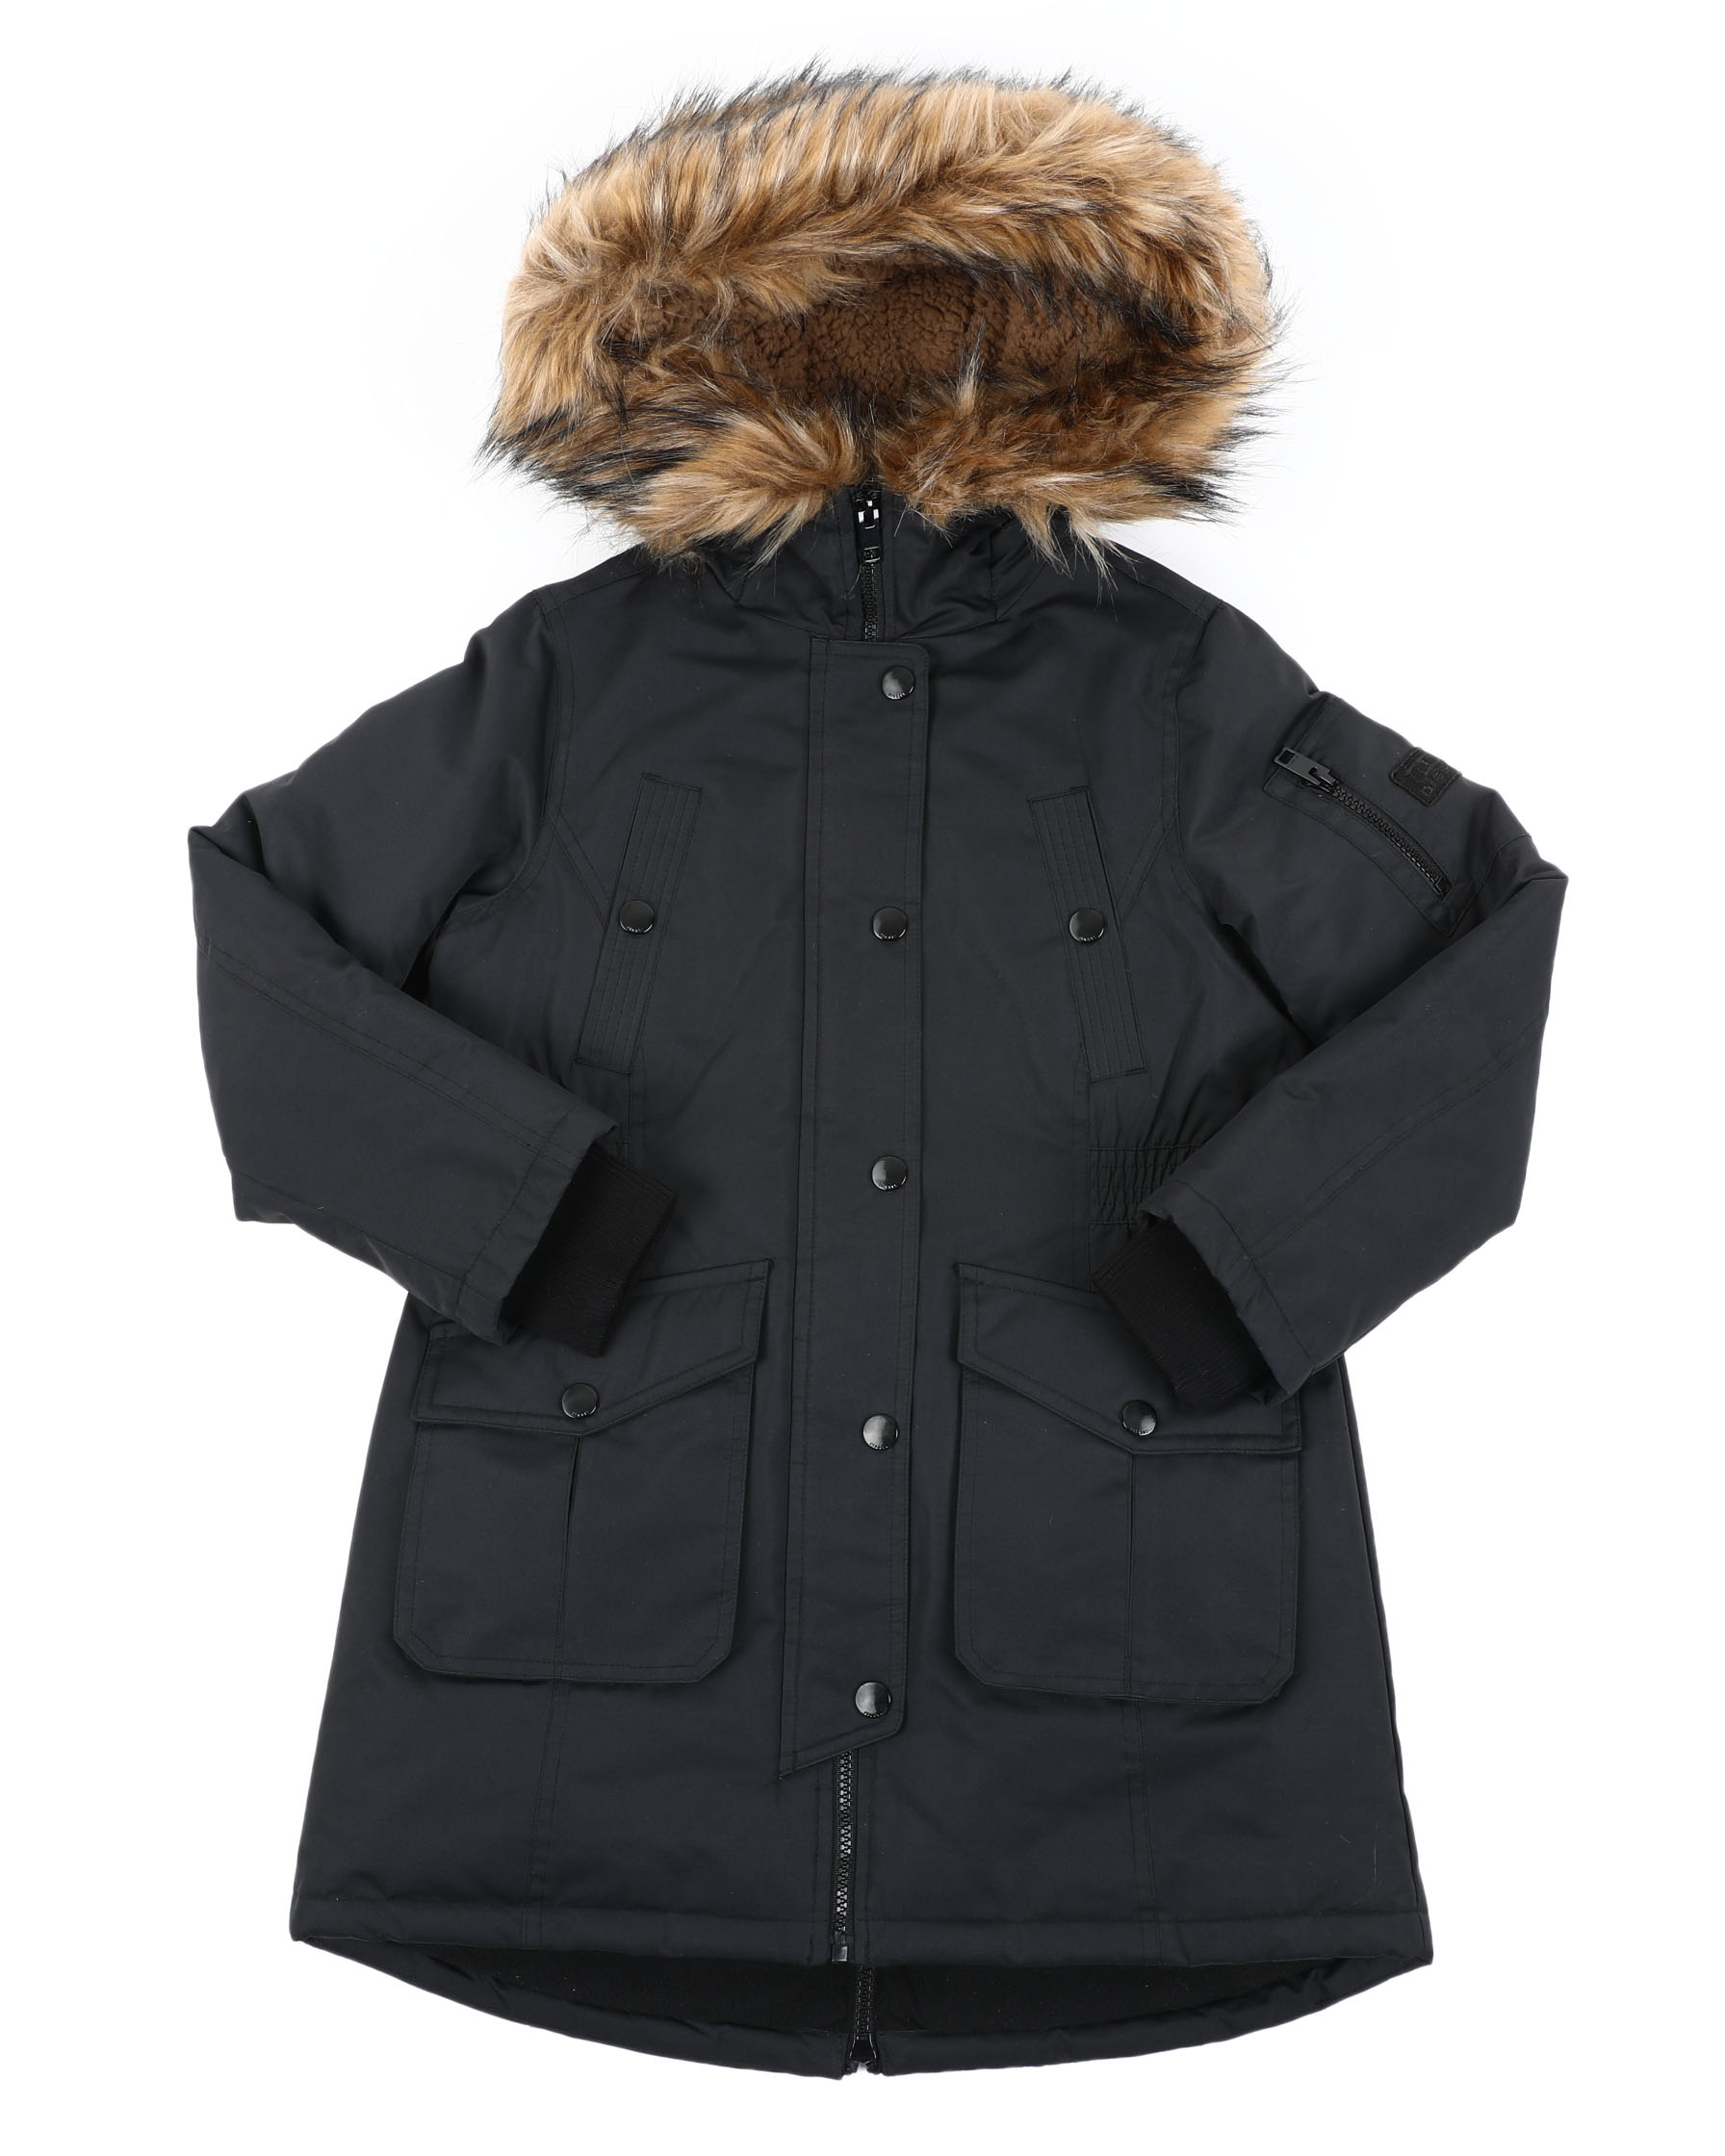 Nautica Big Girls/' Quilted Hooded Jacket Sizes 7-16